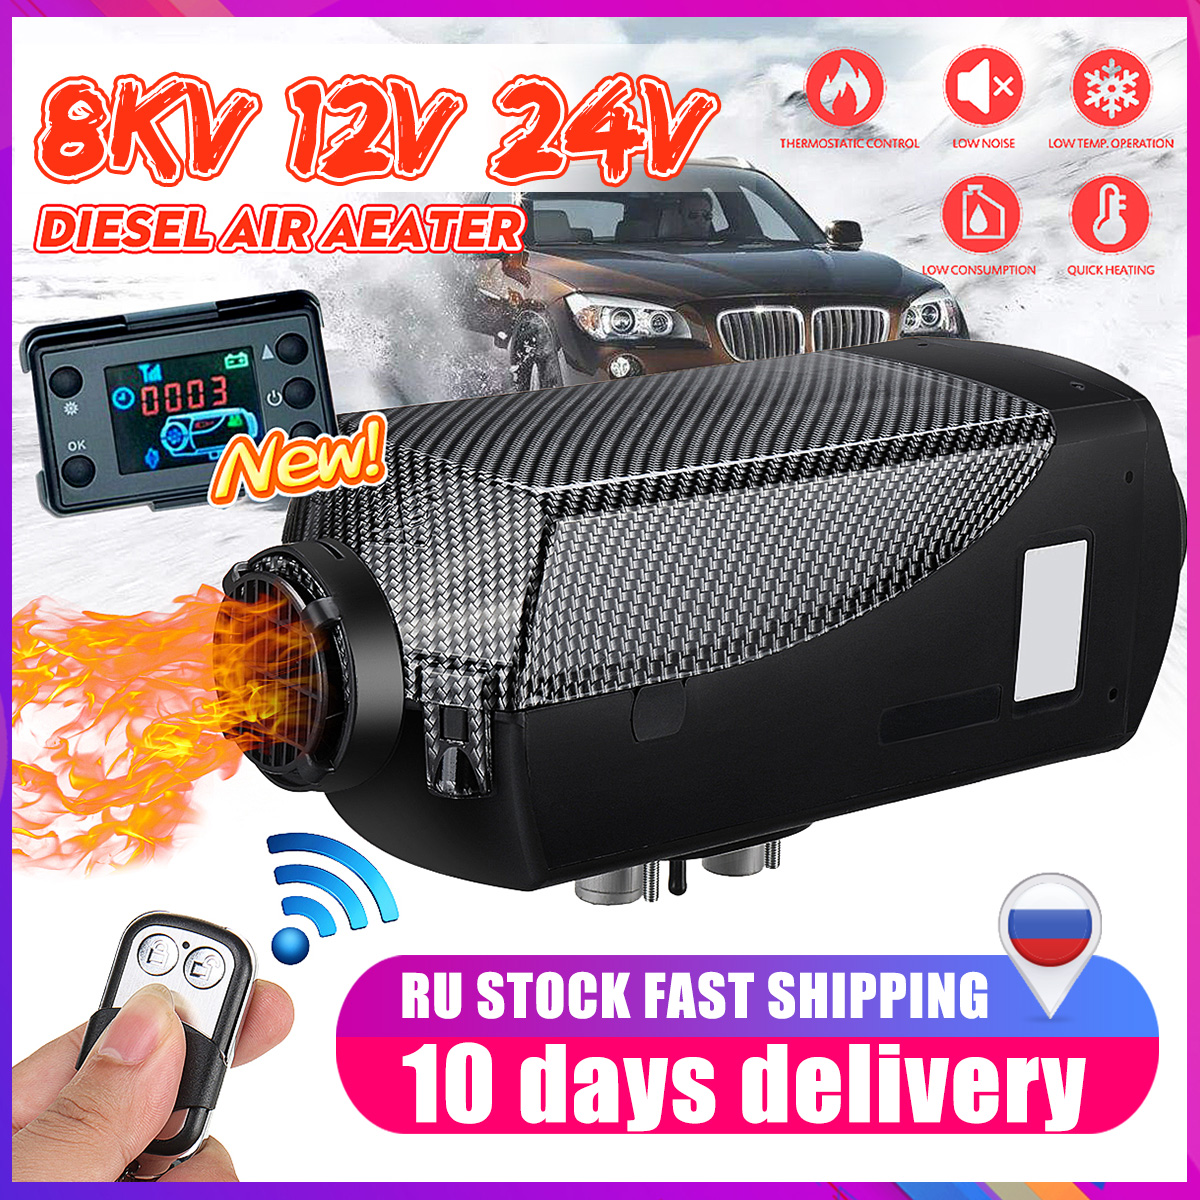 Car Heater 8KW 12V 24V Air Diesel Heater 2 Air Outlet LCD Monitor + 15L Tank Remote Control For RV Boats Trailer Truck Motorhome